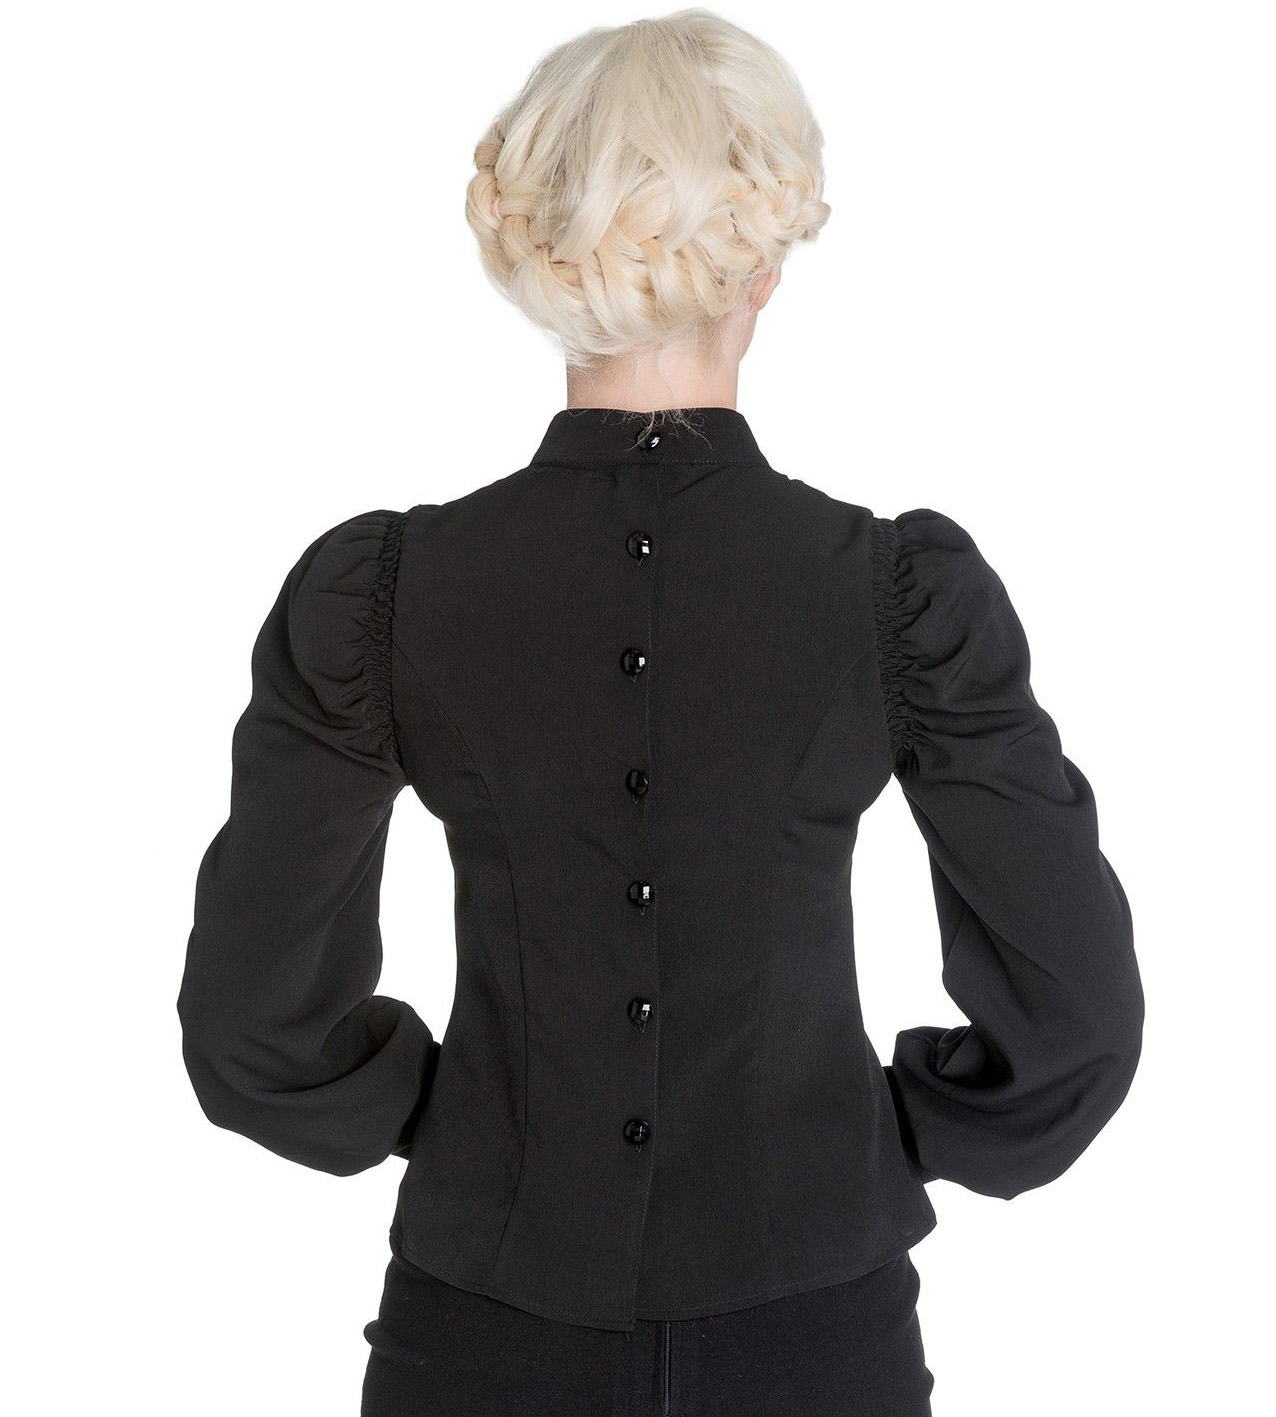 Hell-Bunny-Spin-Doctor-Vampire-Gothic-Shirt-Top-MELROSE-Blouse-All-Sizes thumbnail 9